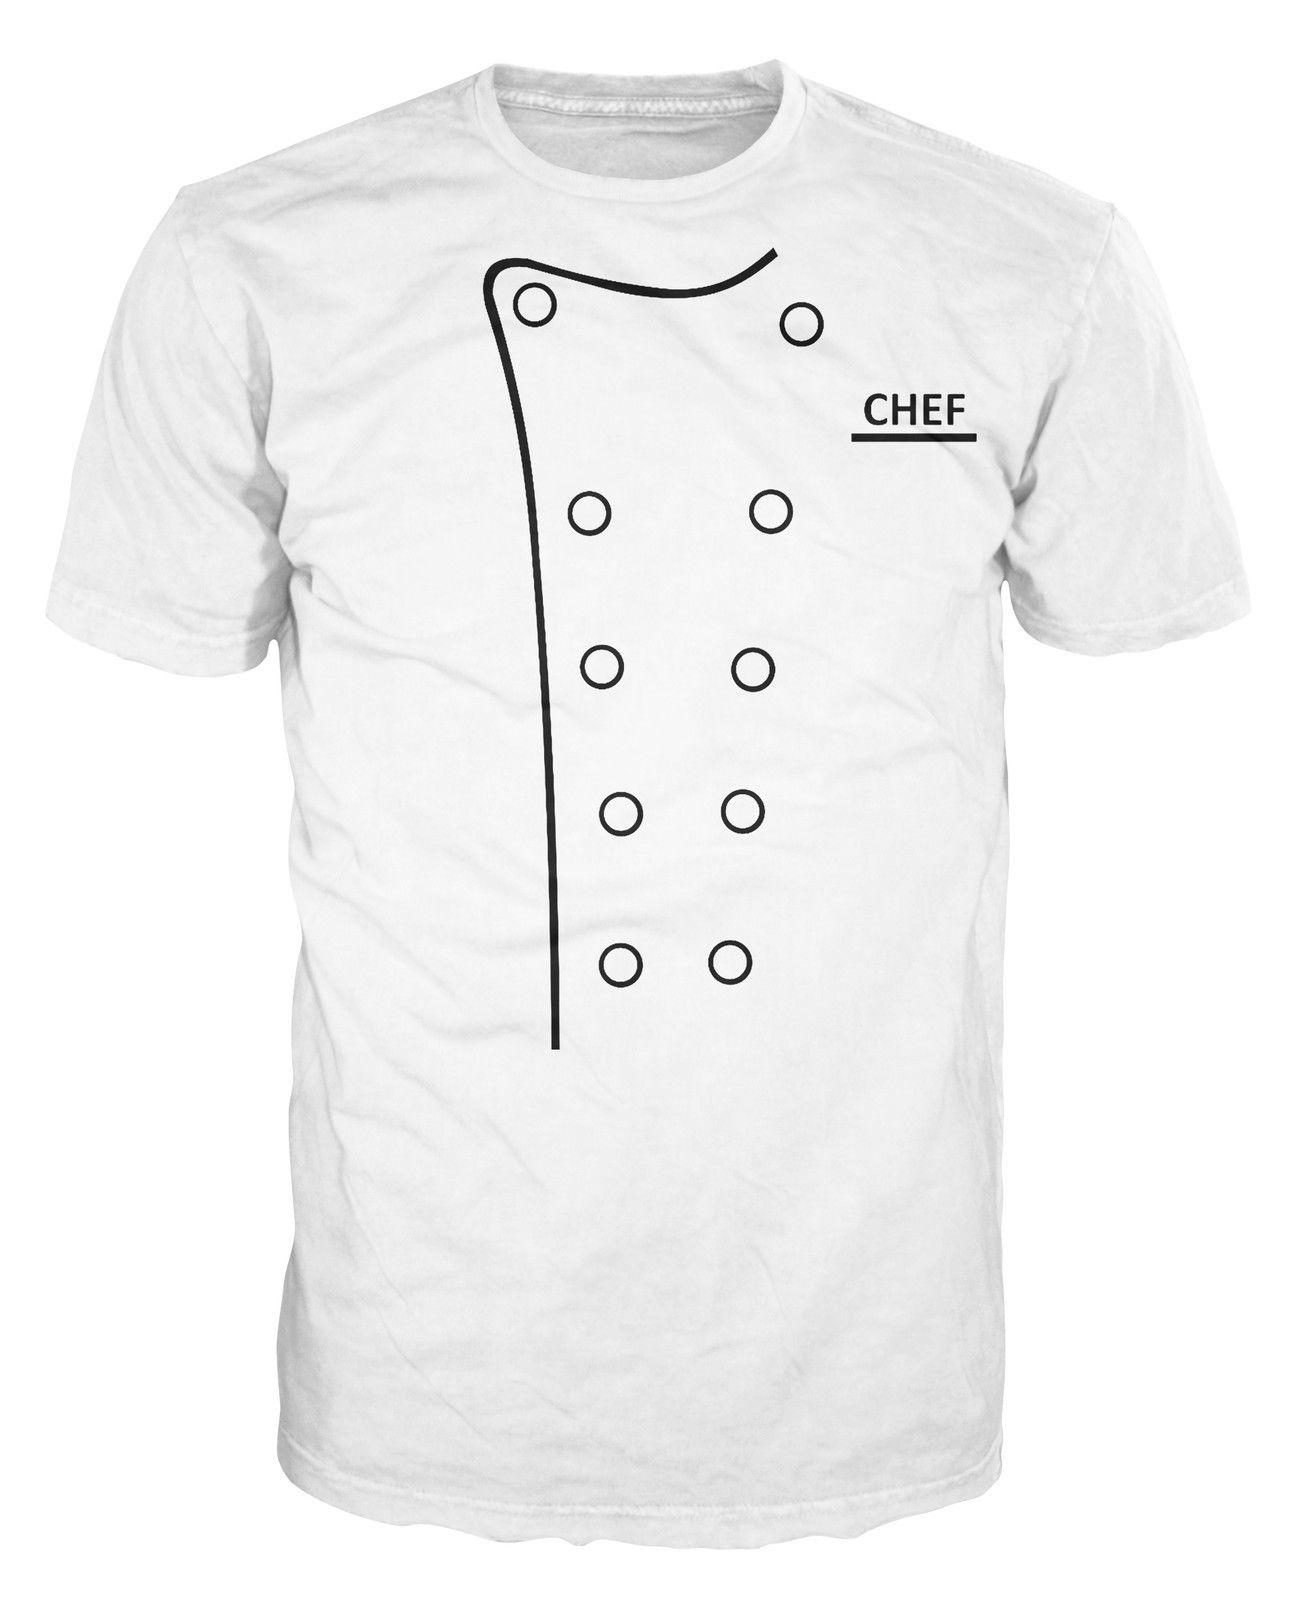 Kitchen Decor Boys and Girls All Over Print T-Shirt,Crew Neck T-Shirt,Chef Hat a